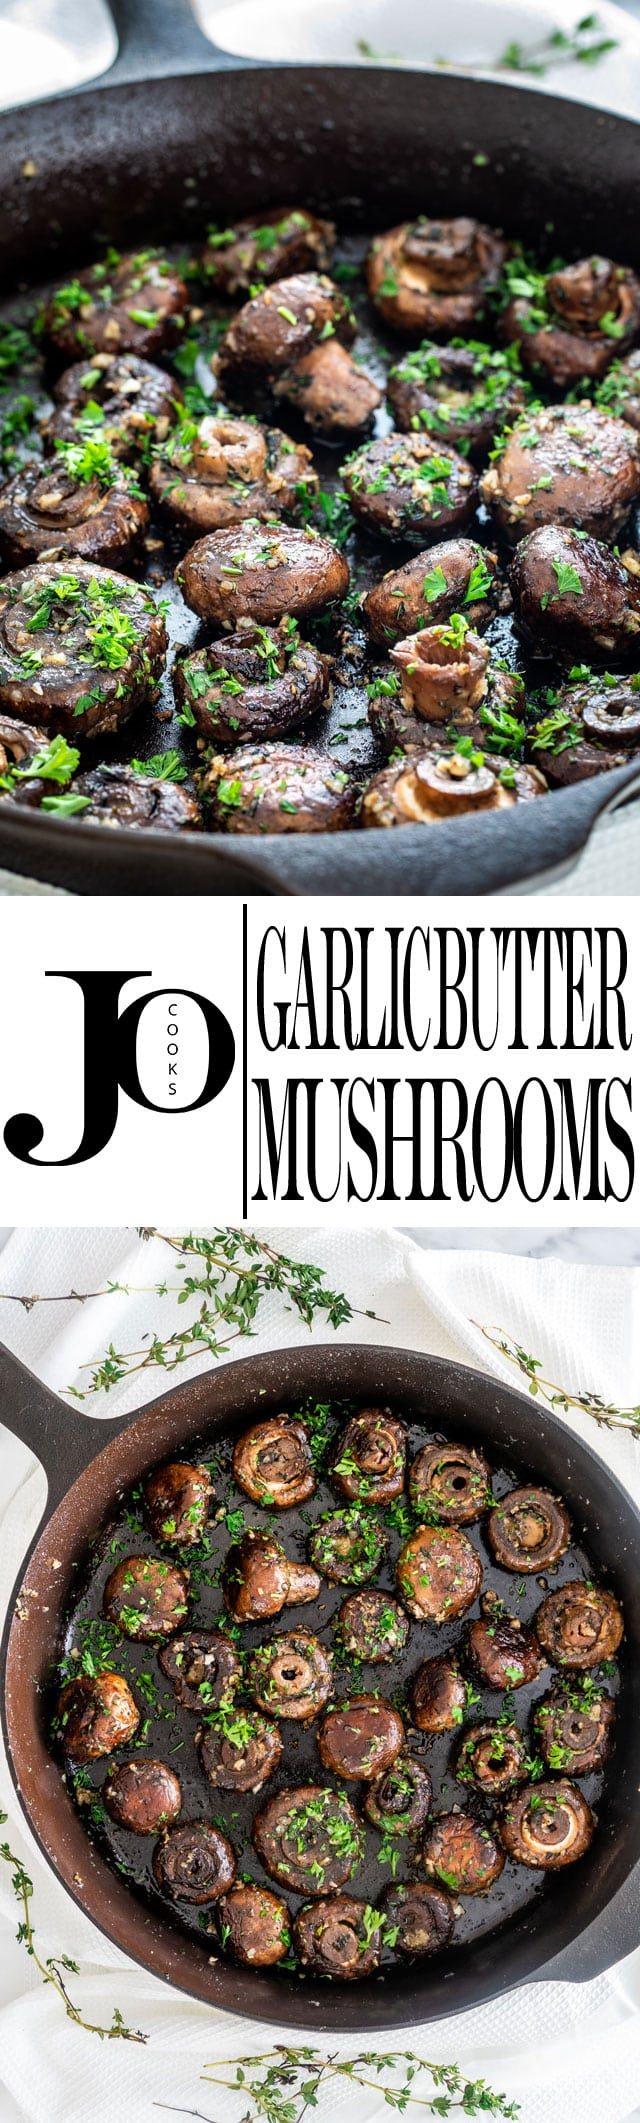 These Garlic Butter Mushrooms are the perfect easy appetizer to serve any time of the year! With only 15 minutes, one skillet, and a handful of ingredients, this dish is going to be a hit. #garlicmushrooms